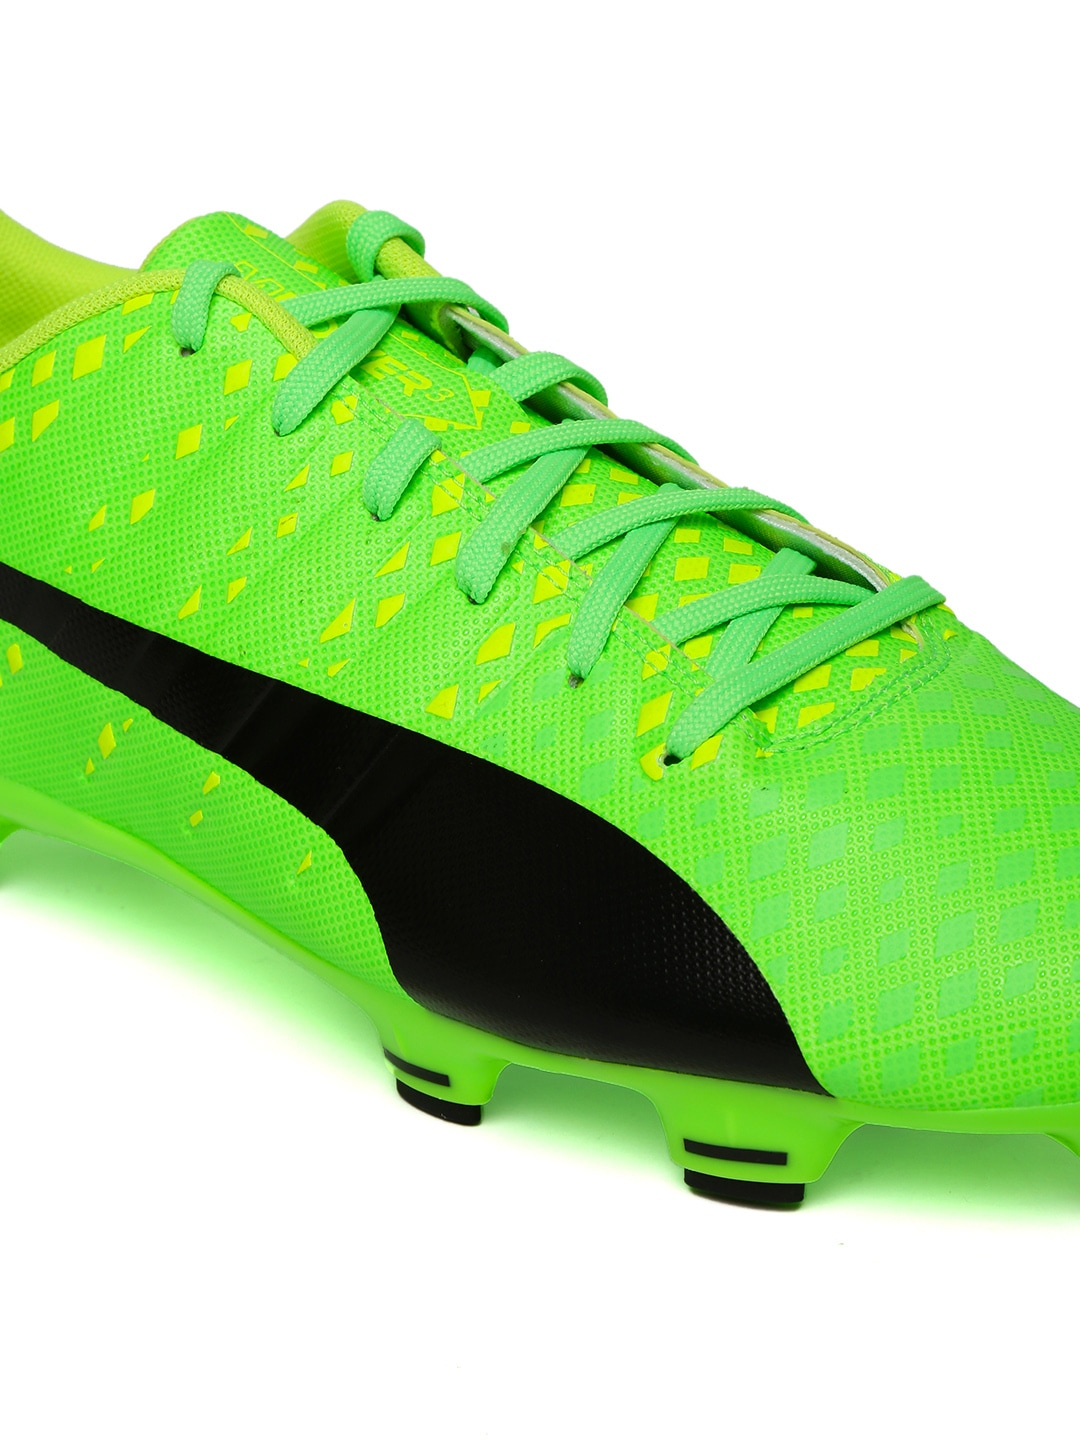 ... discount code for kobe 8 system. puma soccer cleats blue and yellow  mucus e10e1 0ba62 bdcd5f4761ed